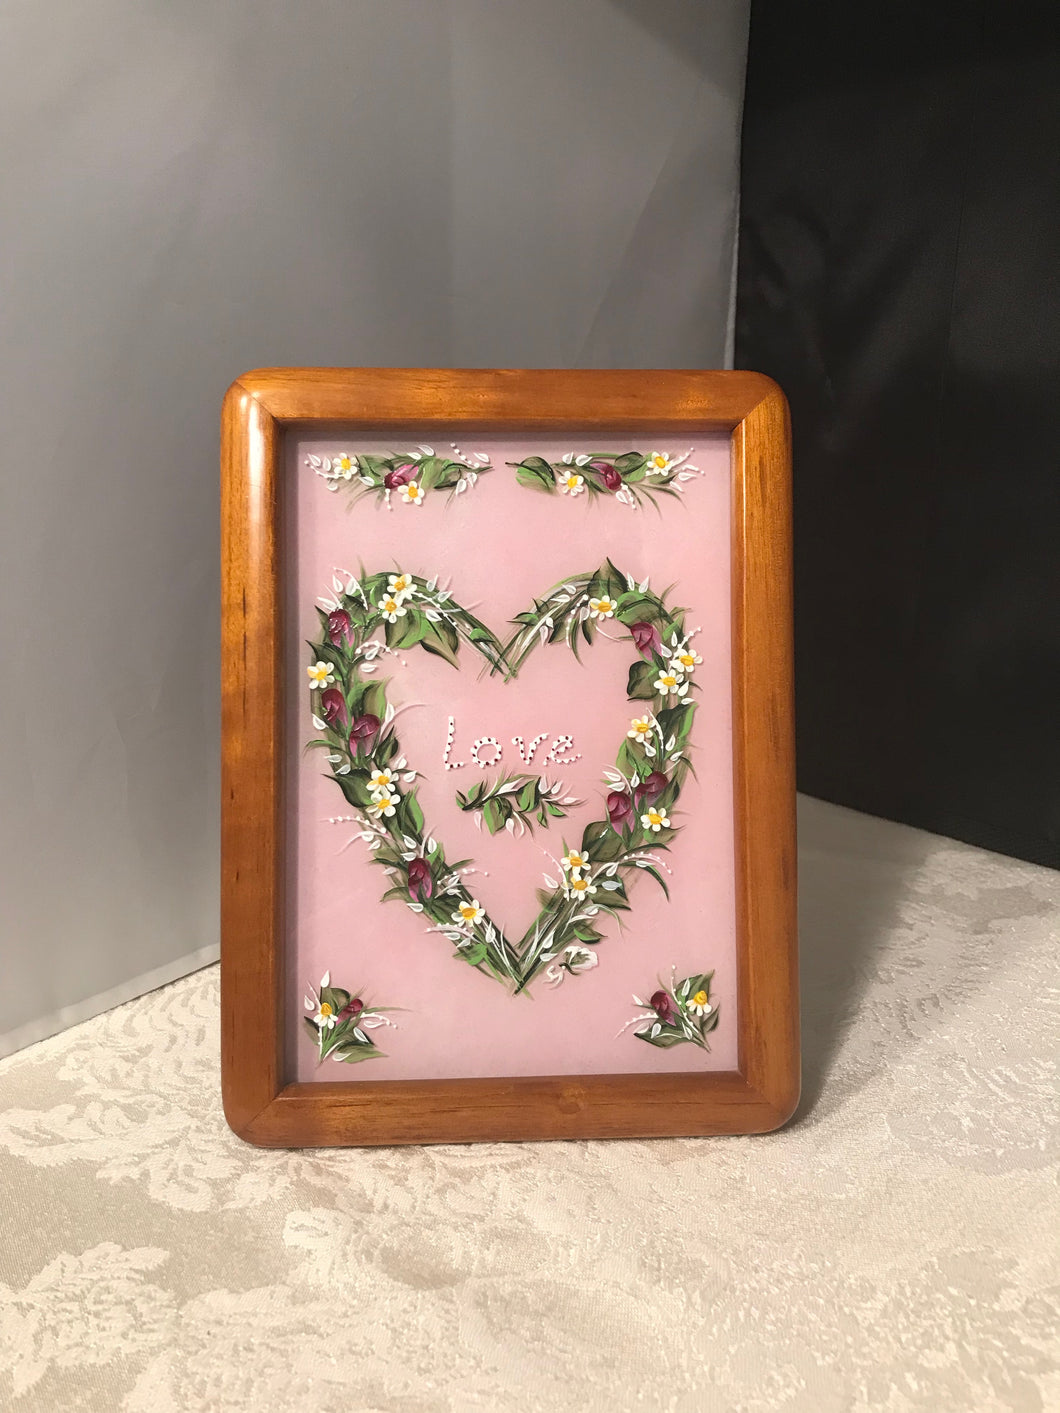 Hand Painted Framed Glass Heart - Ivy Cottage Art Gifts